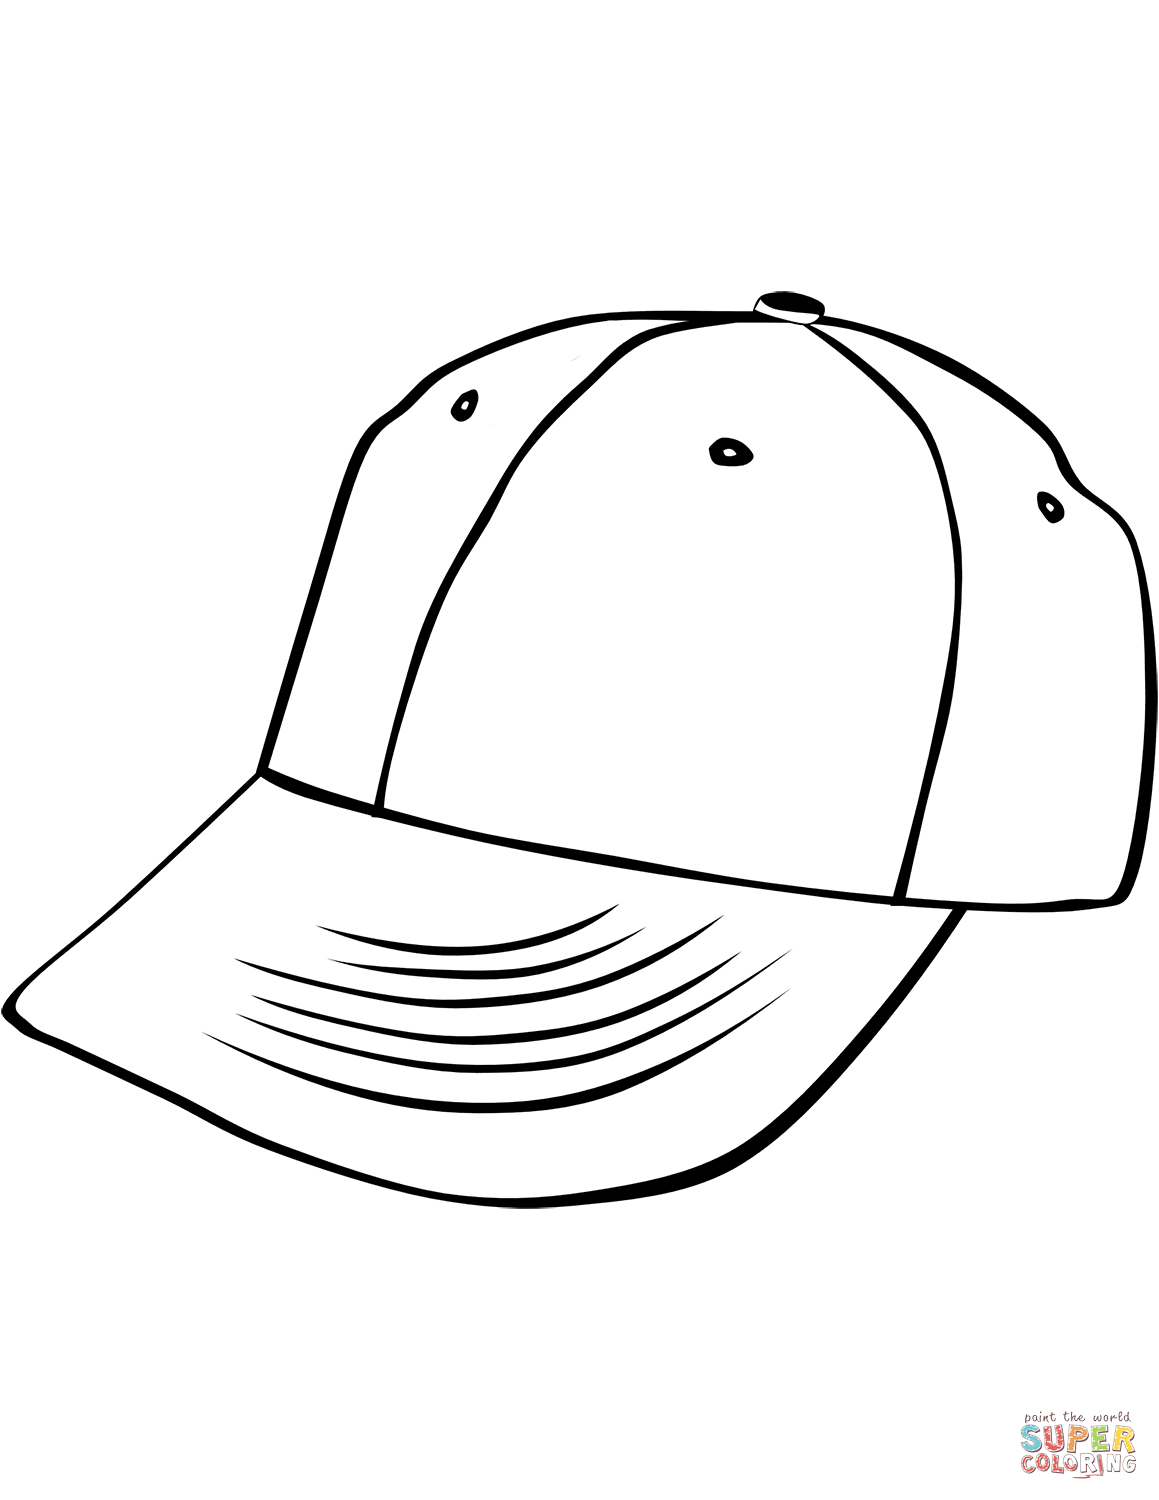 baseball cap drawing at getdrawings com